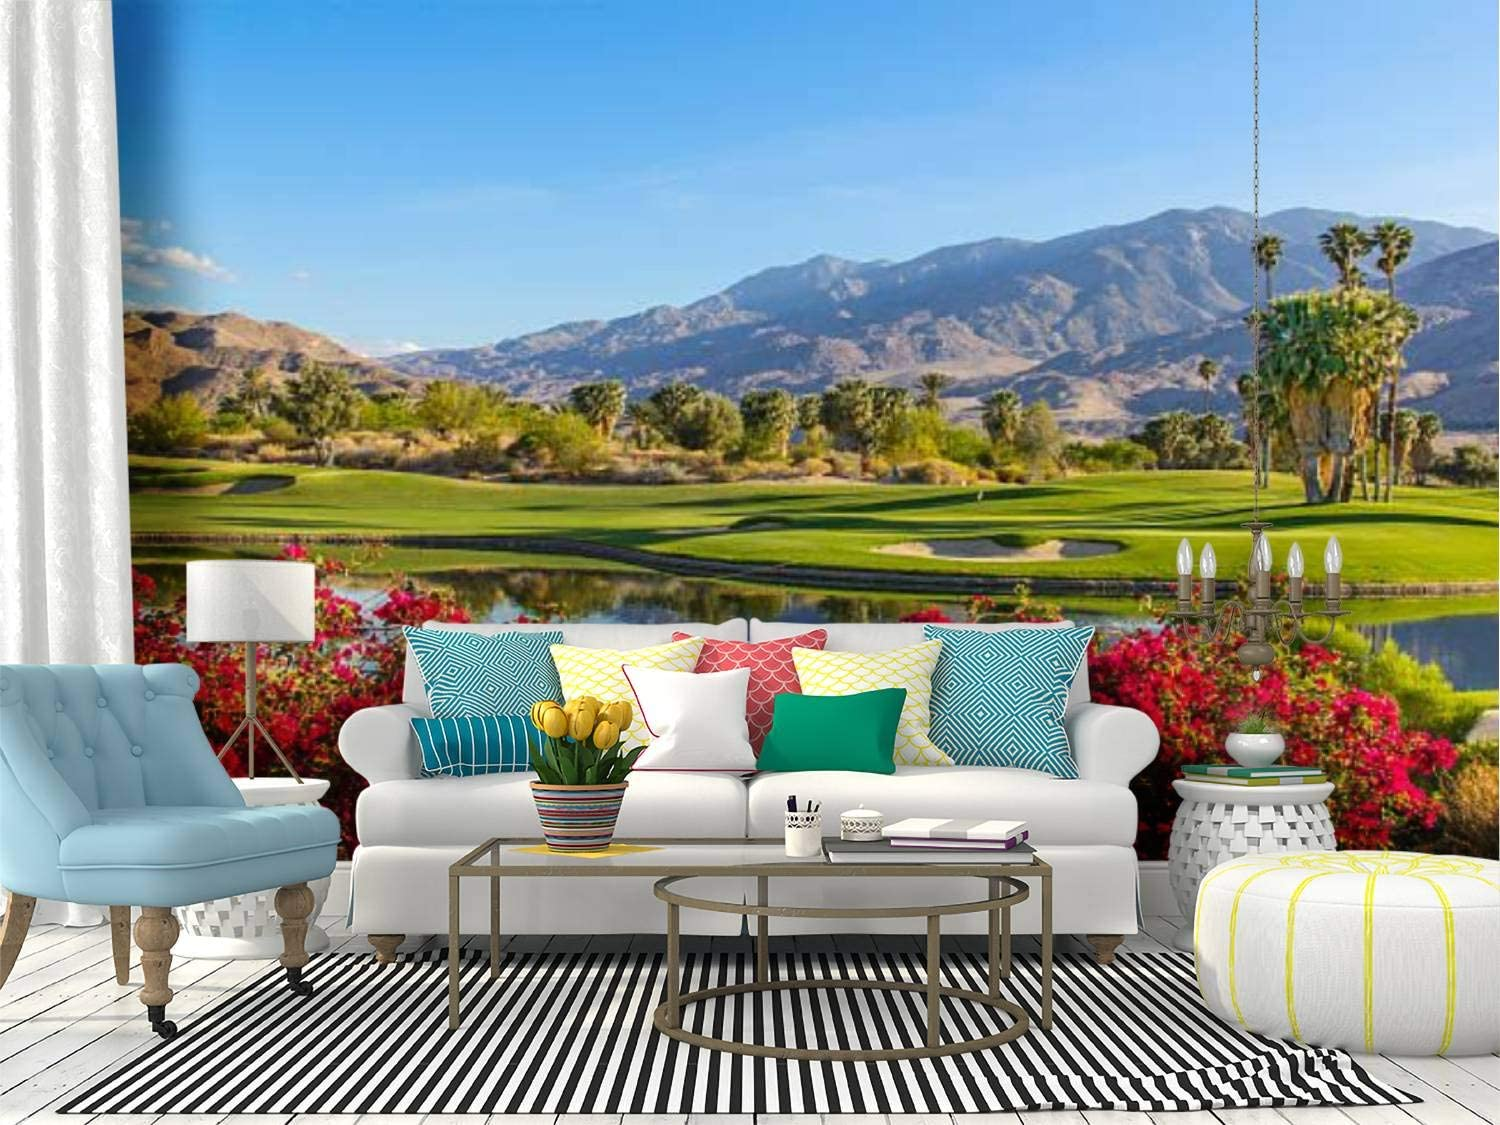 Amazon Com Wall Mural Golf Course In Palm Springs California P Floral Beauty Stock Peel And Stick Wallpaper Self Adhesive Wallpaper Large Wall Sticker Removable Vinyl Film Roll Shelf Paper Home Decor Home